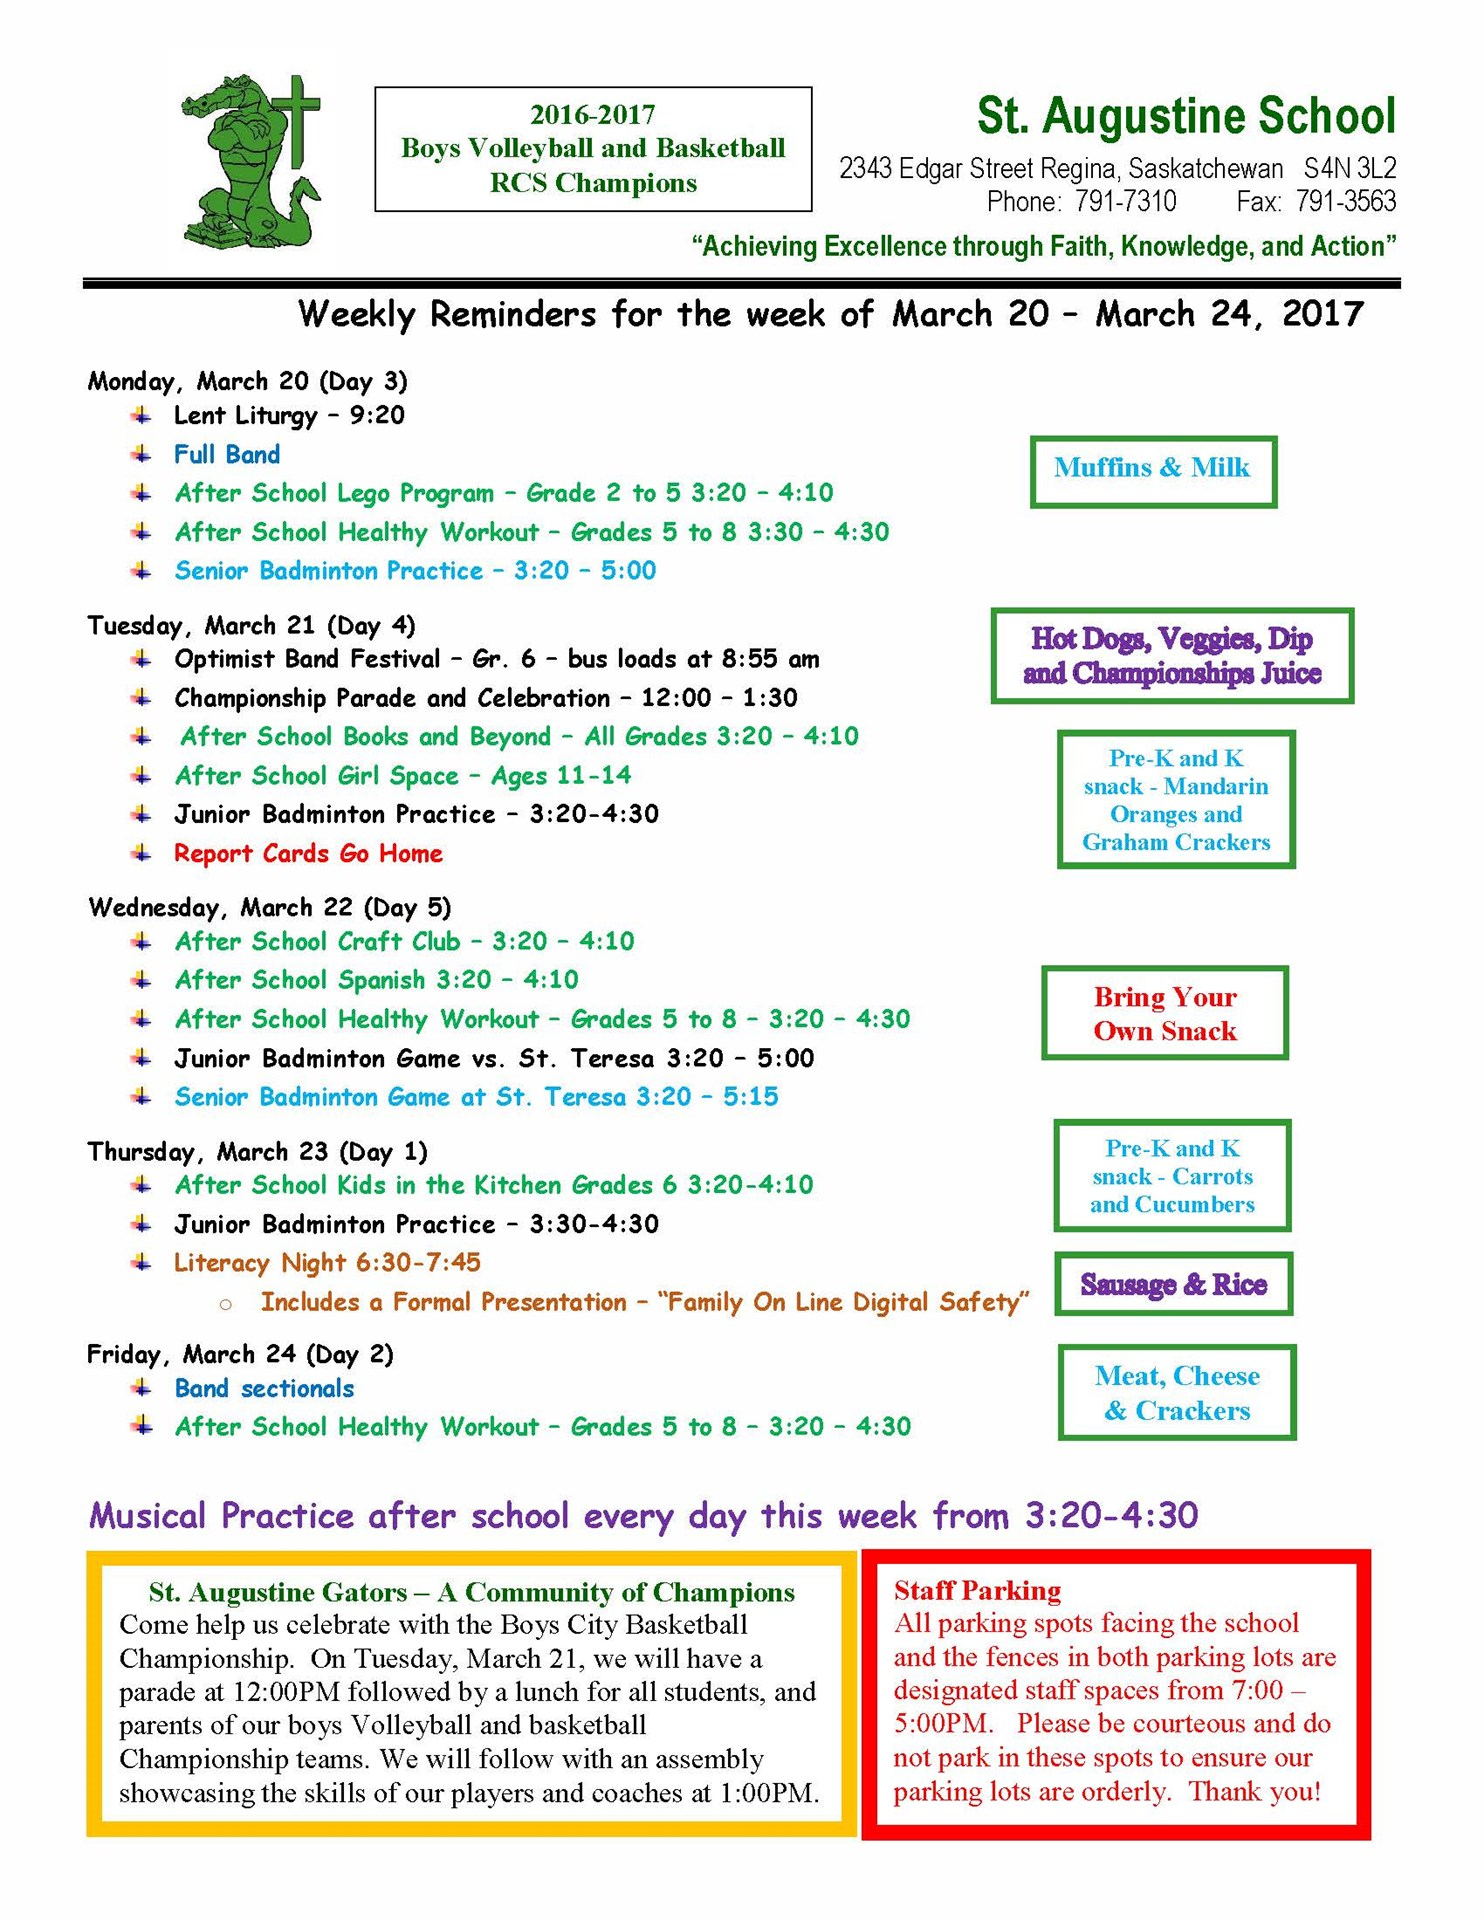 Weekly%20Reminders%20March%2020,%202017.jpg